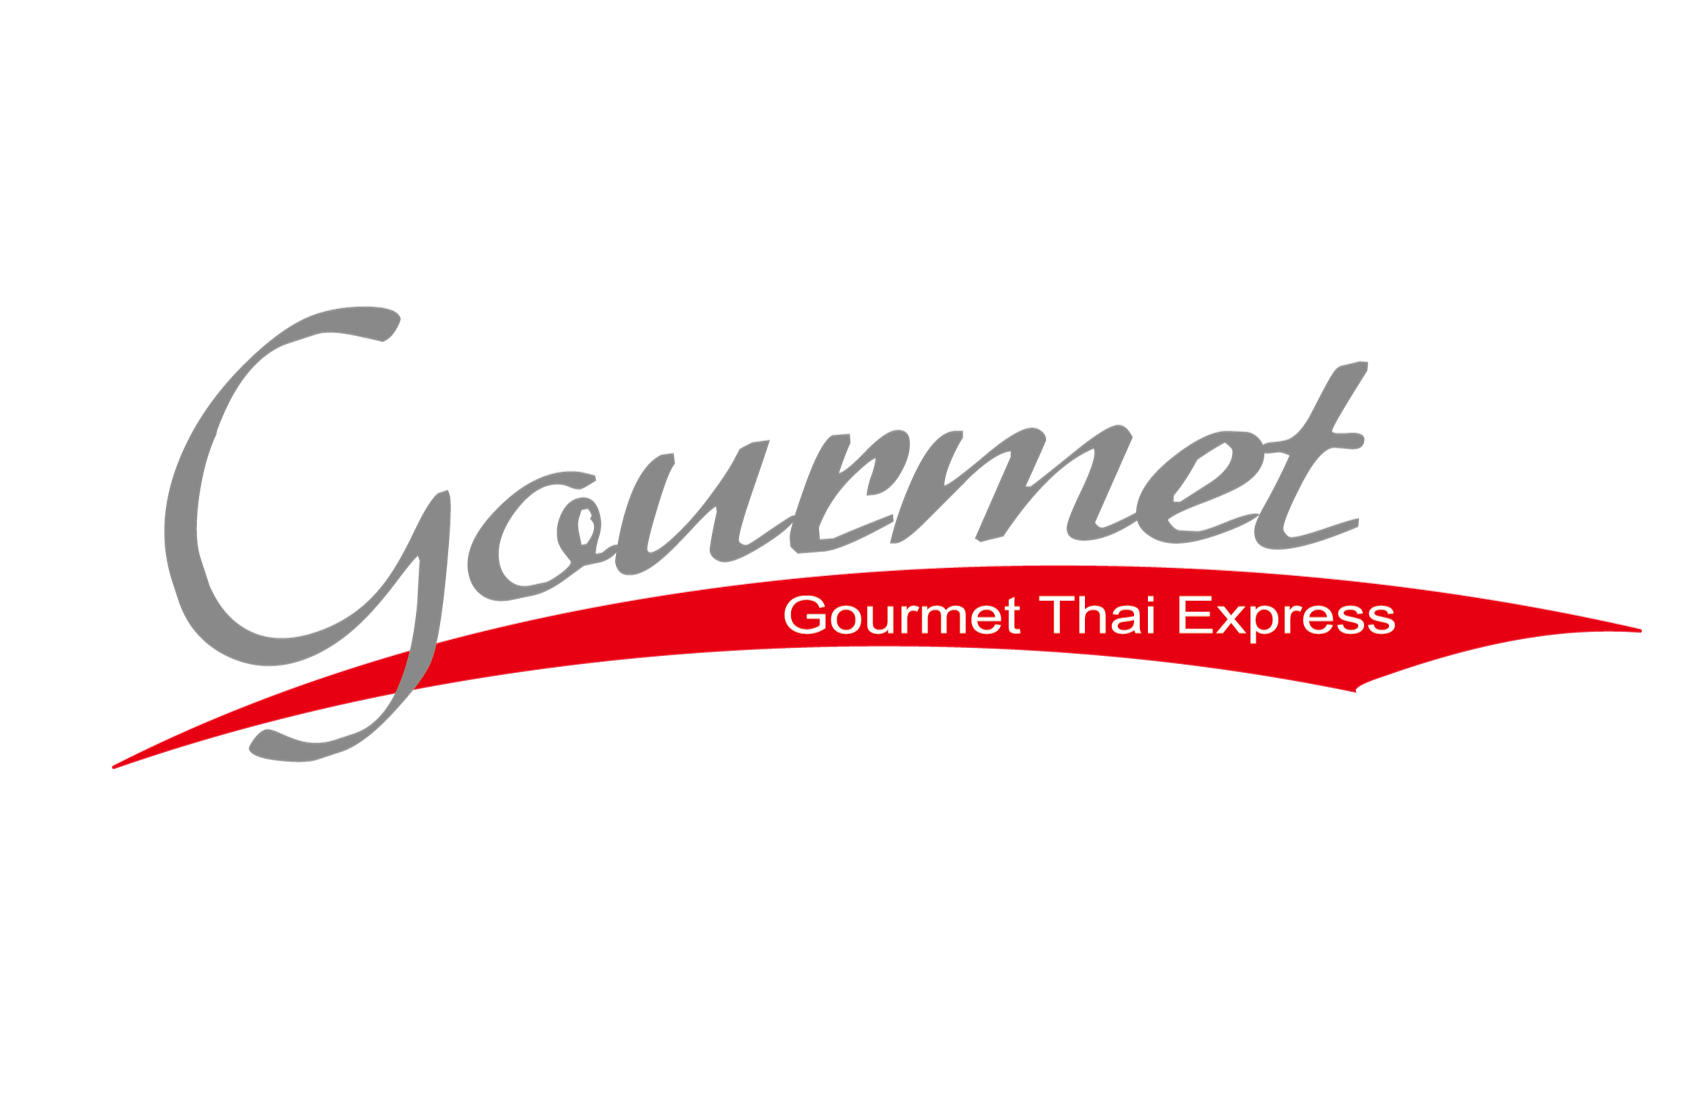 Gourmet Thai Express